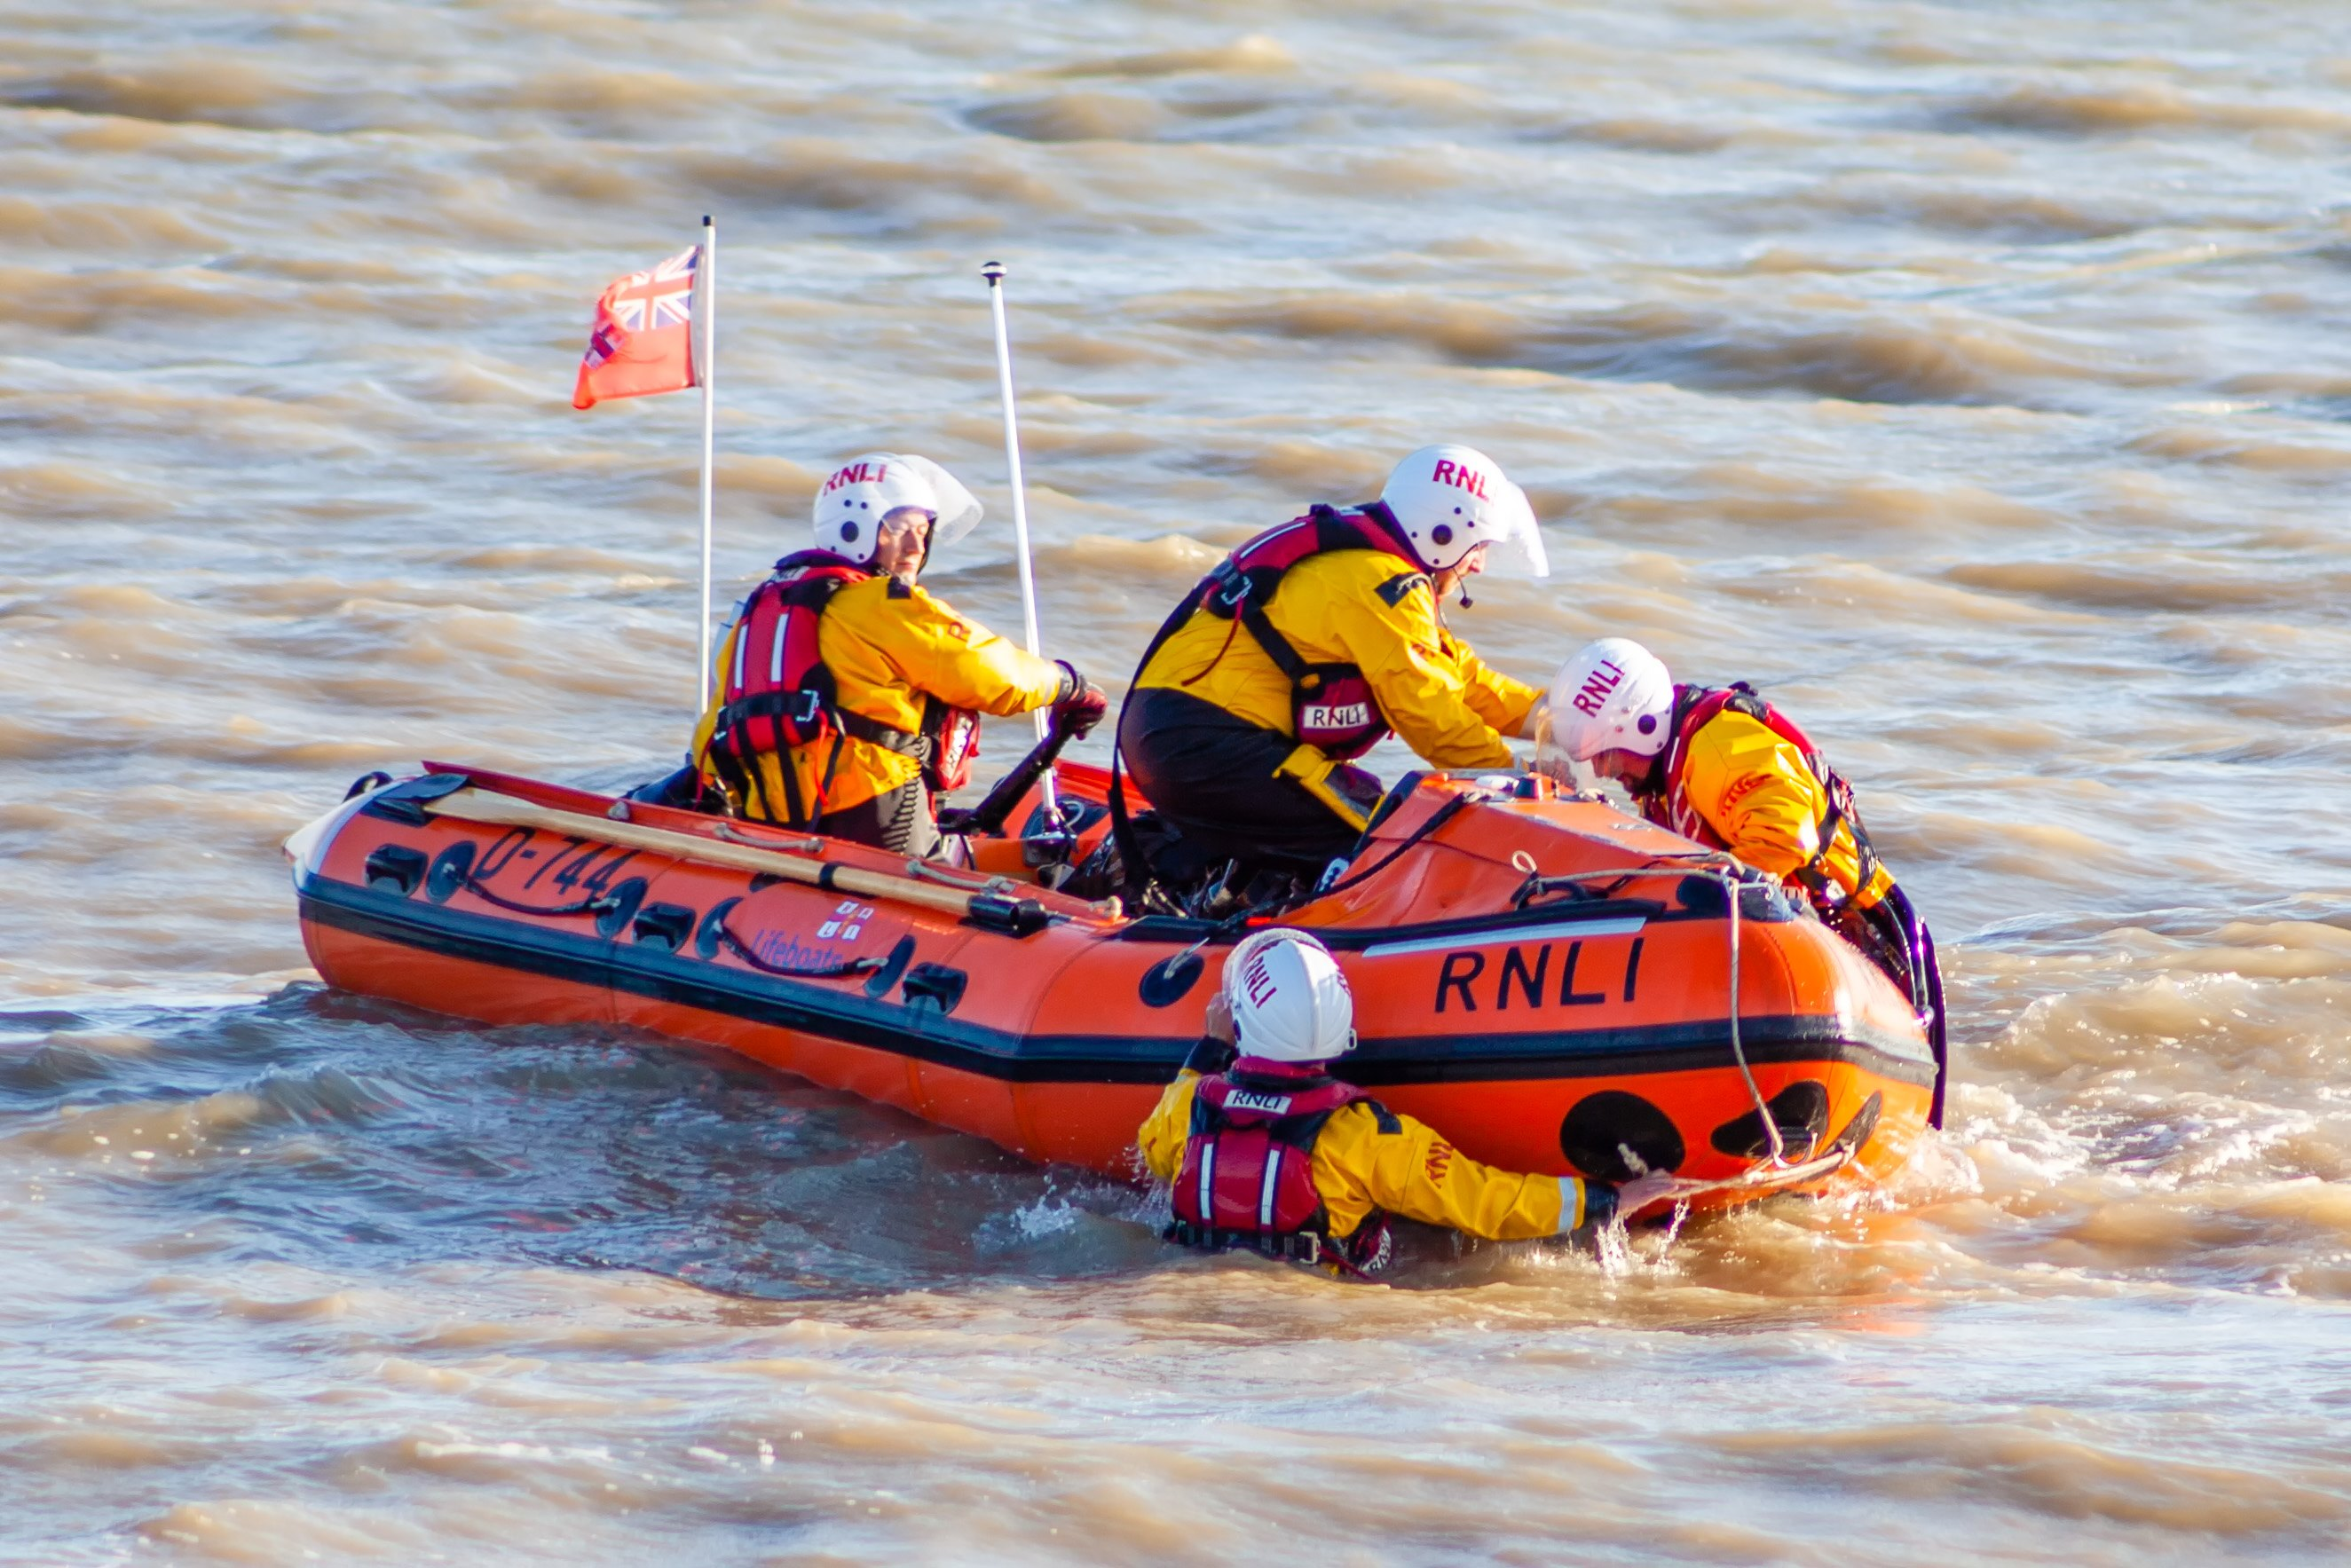 Relaunch of ILB with casualty safely ashore